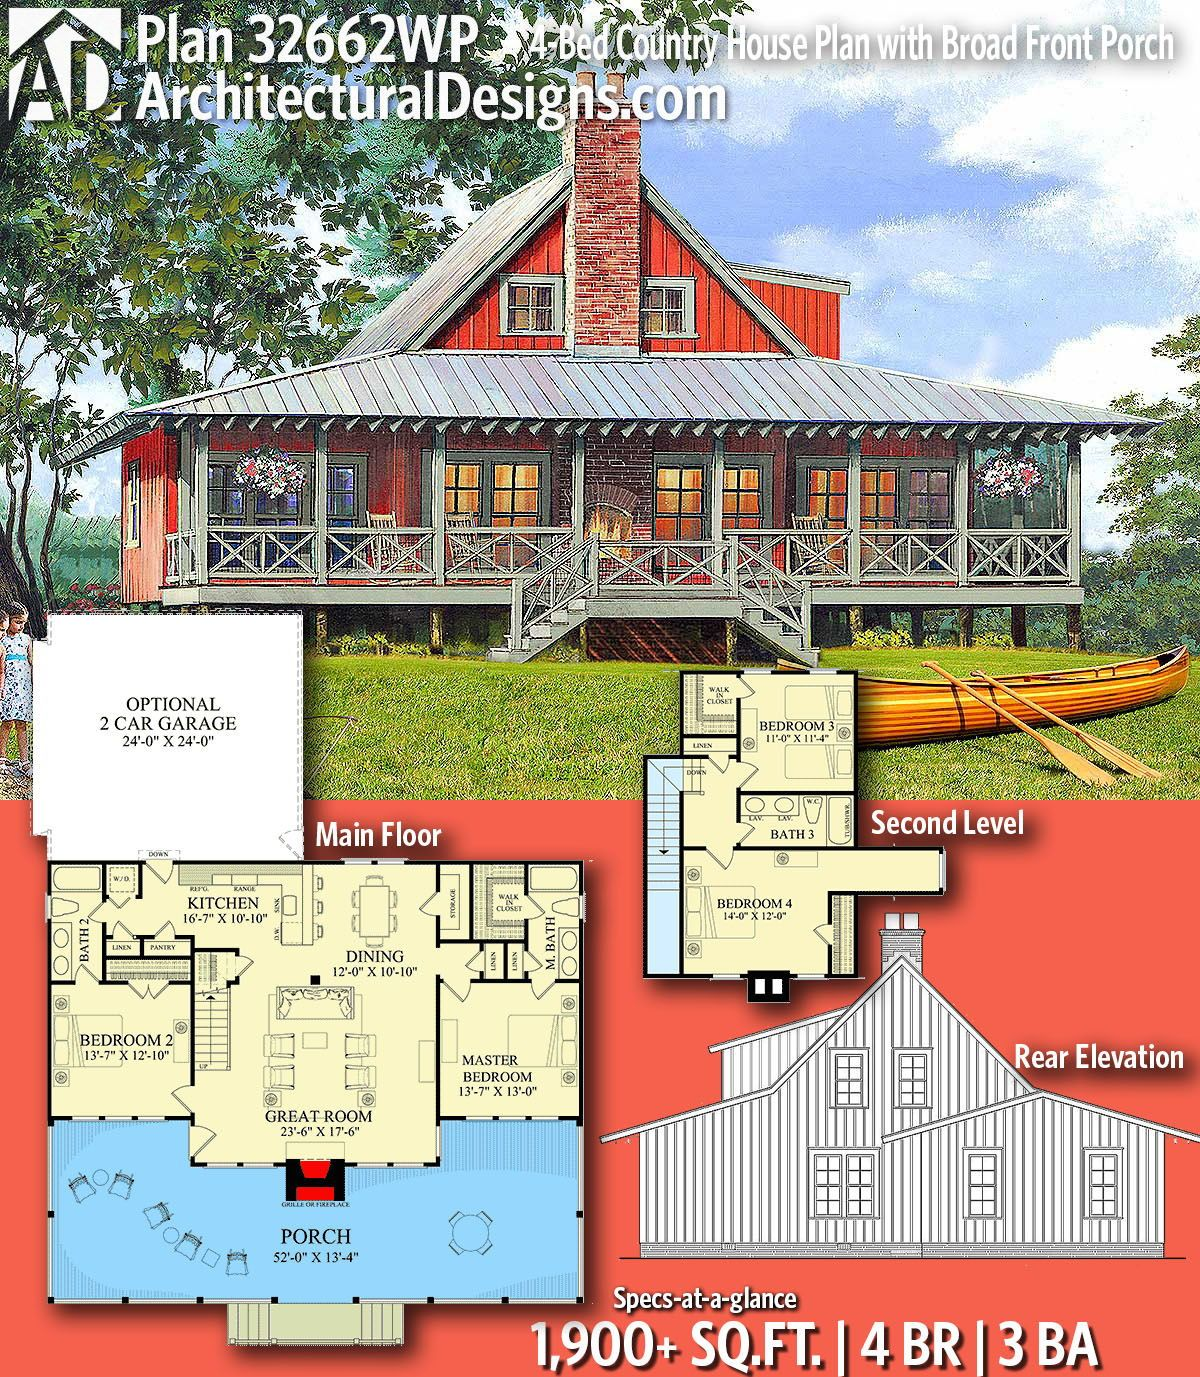 Dream Country House Plans Small on small country home ideas, small country homes with wrap around porches, home mediterranean house plans, luxury homes house plans, lowcountry creole house plans, dream home house plans, small country house building plans, vacation house plans, small beach house designs, coastal house plans, new american style house plans, southern beach house plans, small modern tropical house design, cottage house plans, small modern architecture homes, small country house plans with porches,